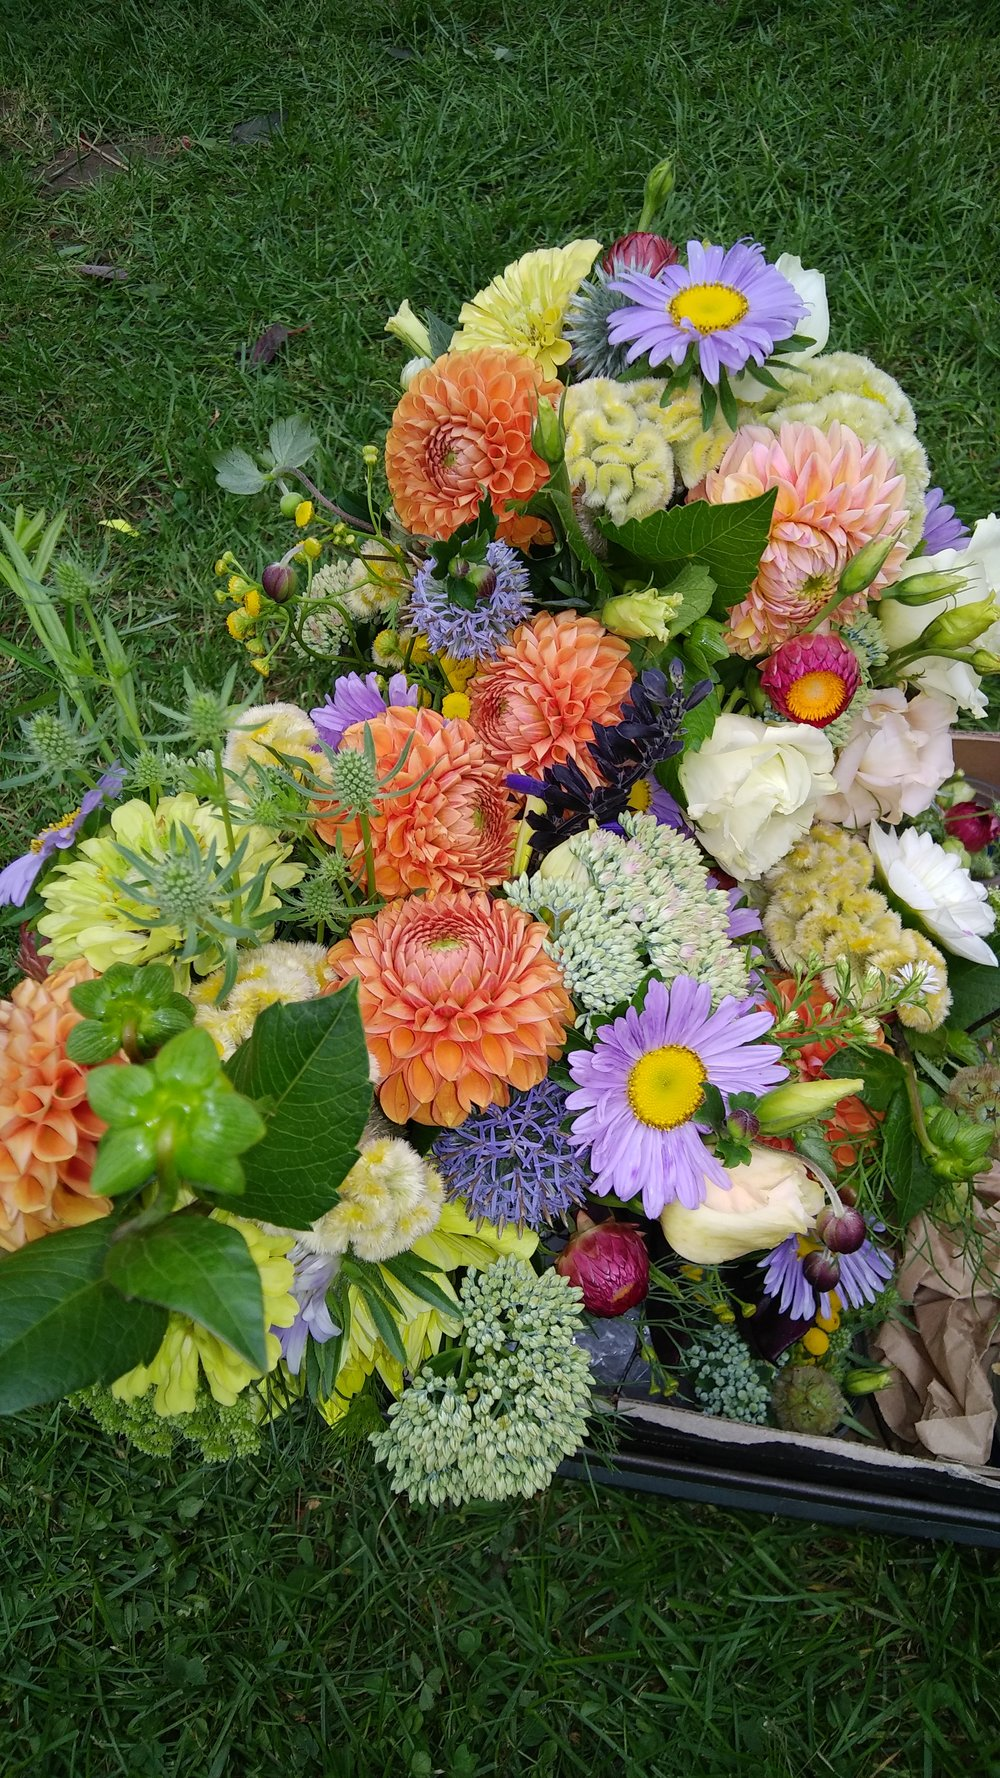 wedding flowers laura and ben 9 - 2- 18.jpg